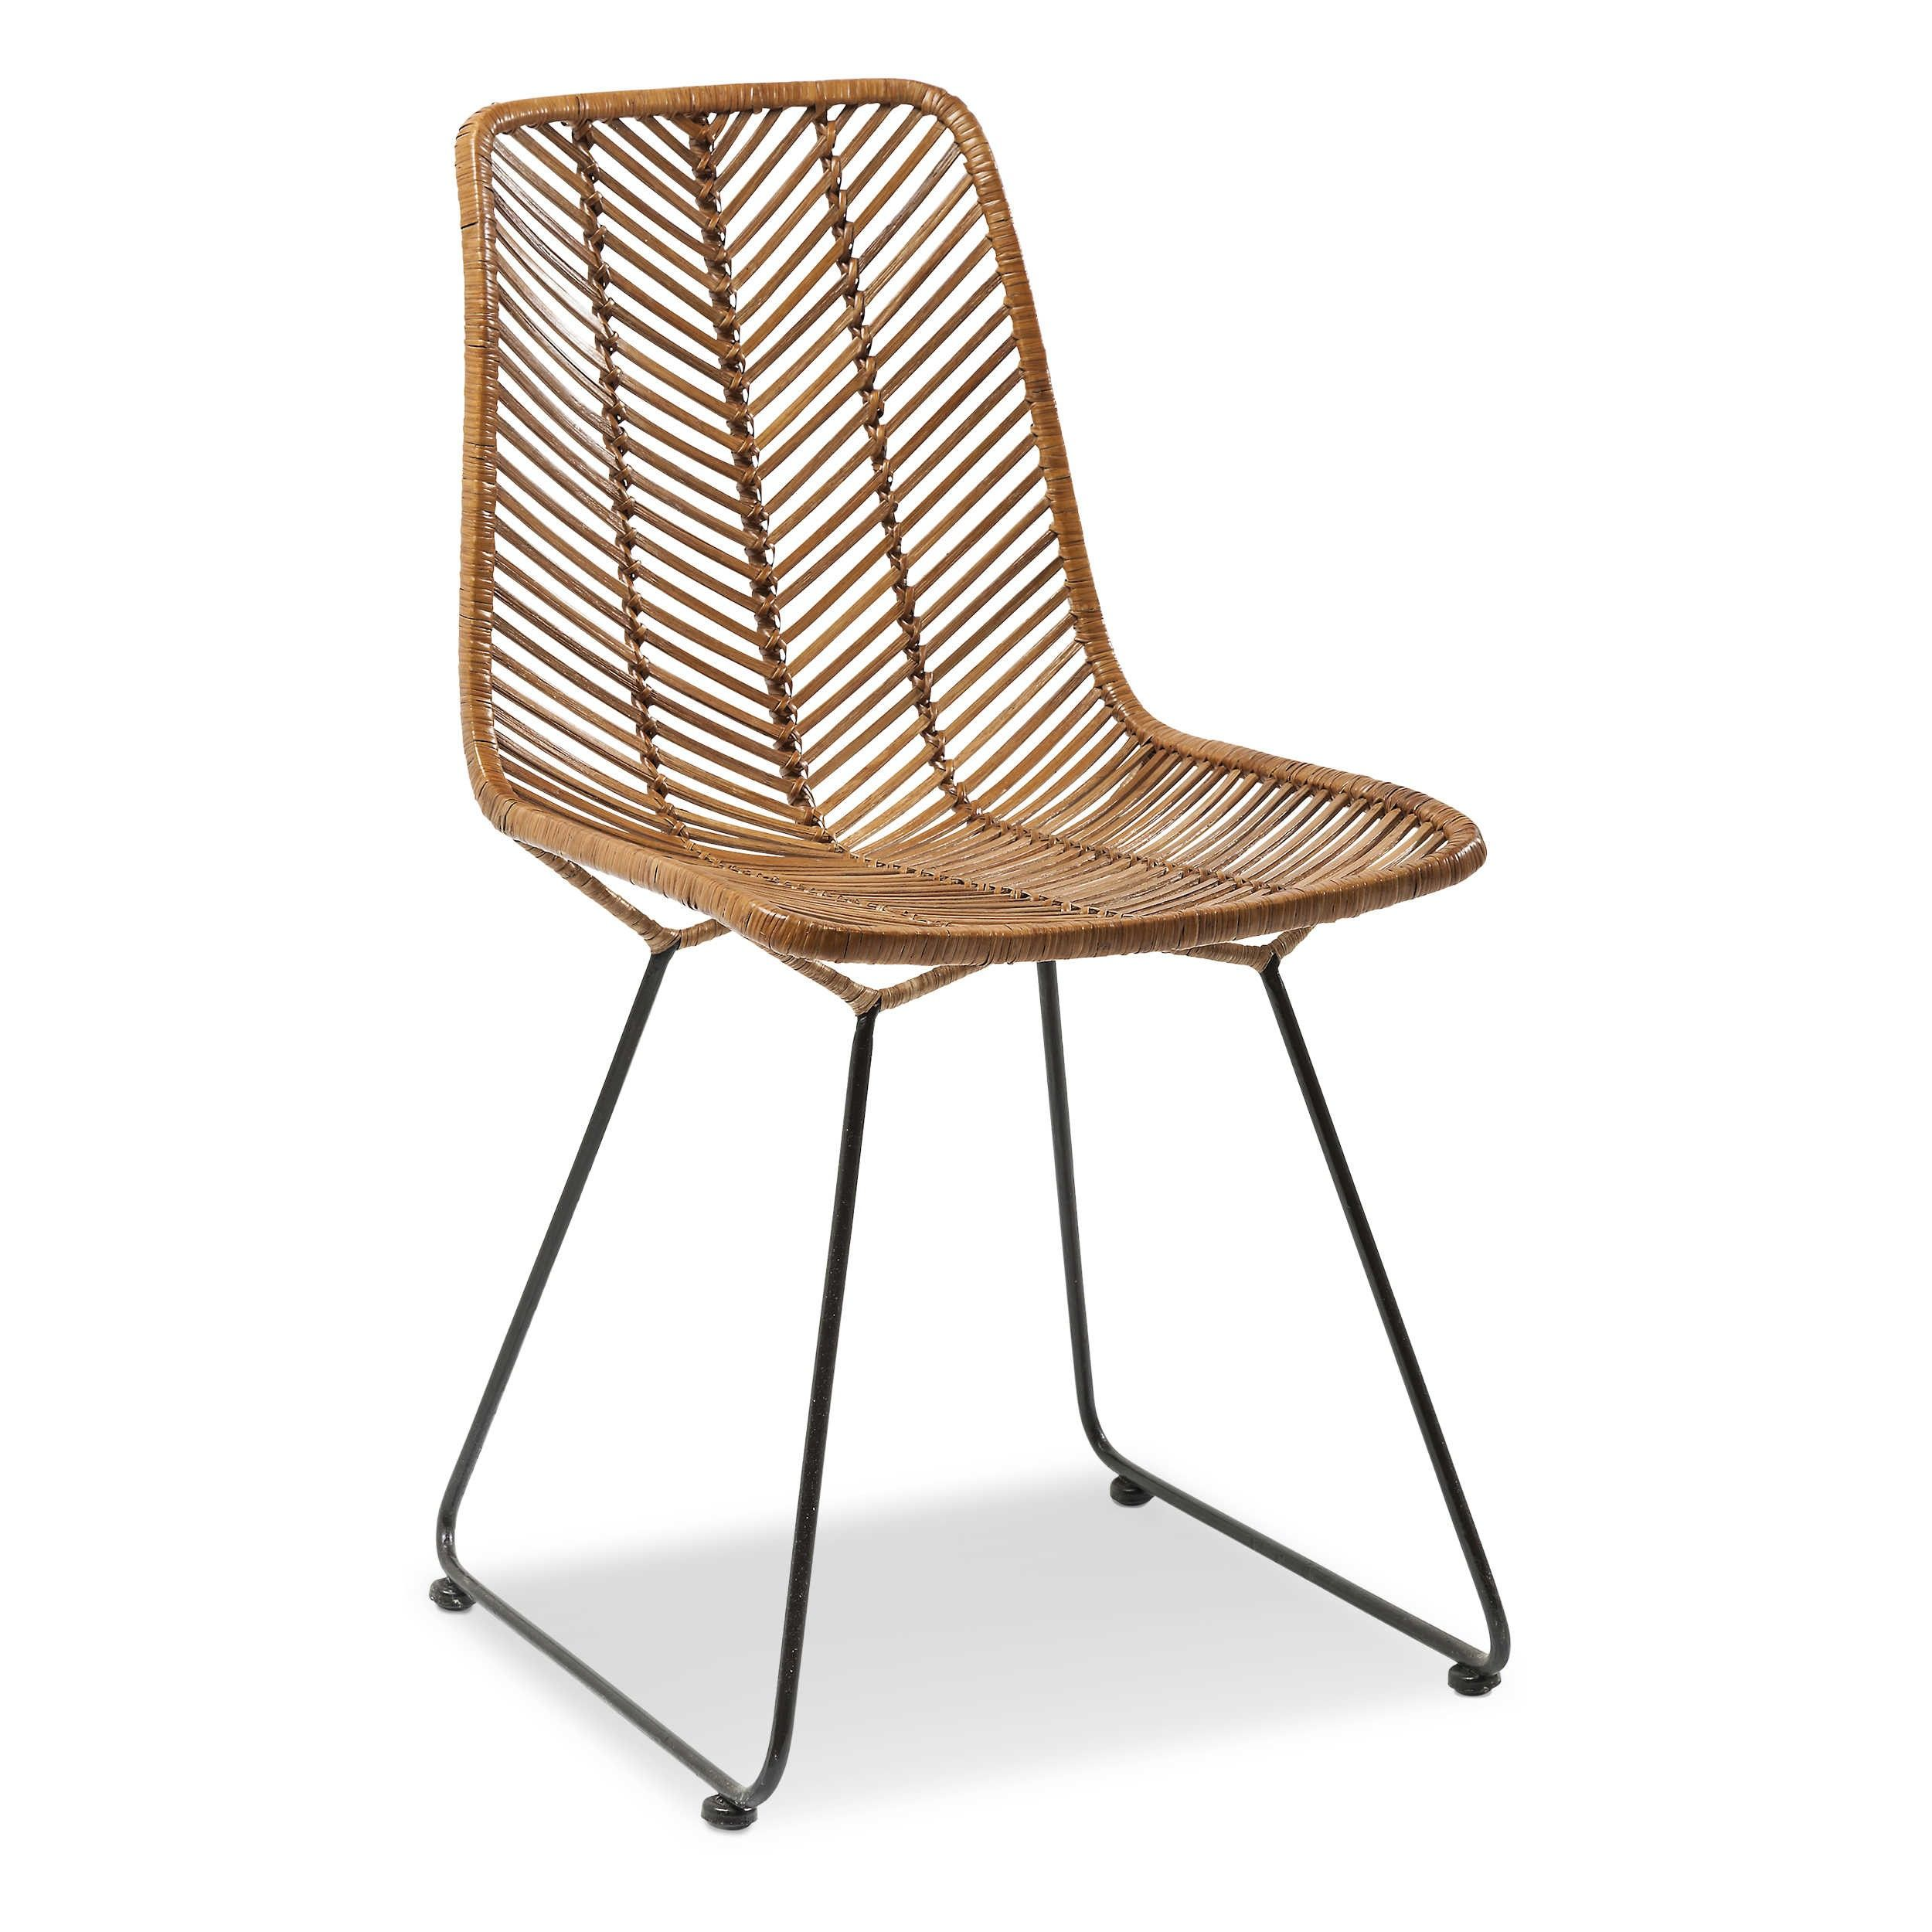 Korbstuhl Rattan Stuhl Ko Lanta In 2019 La Silla Rattan Outdoor Furniture Ko